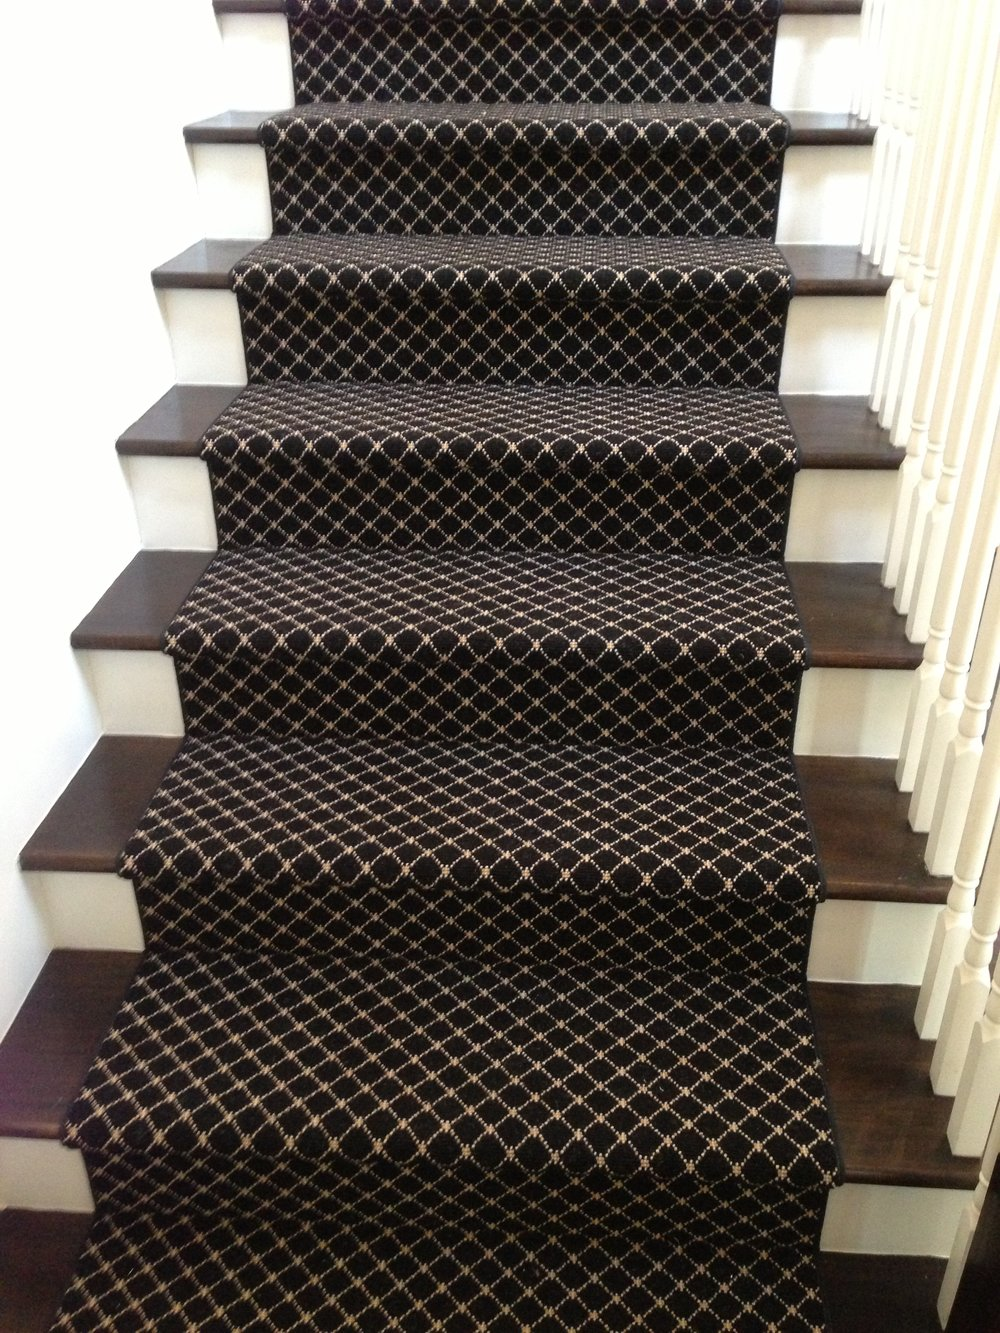 Carpet runner on stair - Designer Carla Aston #stairrunner